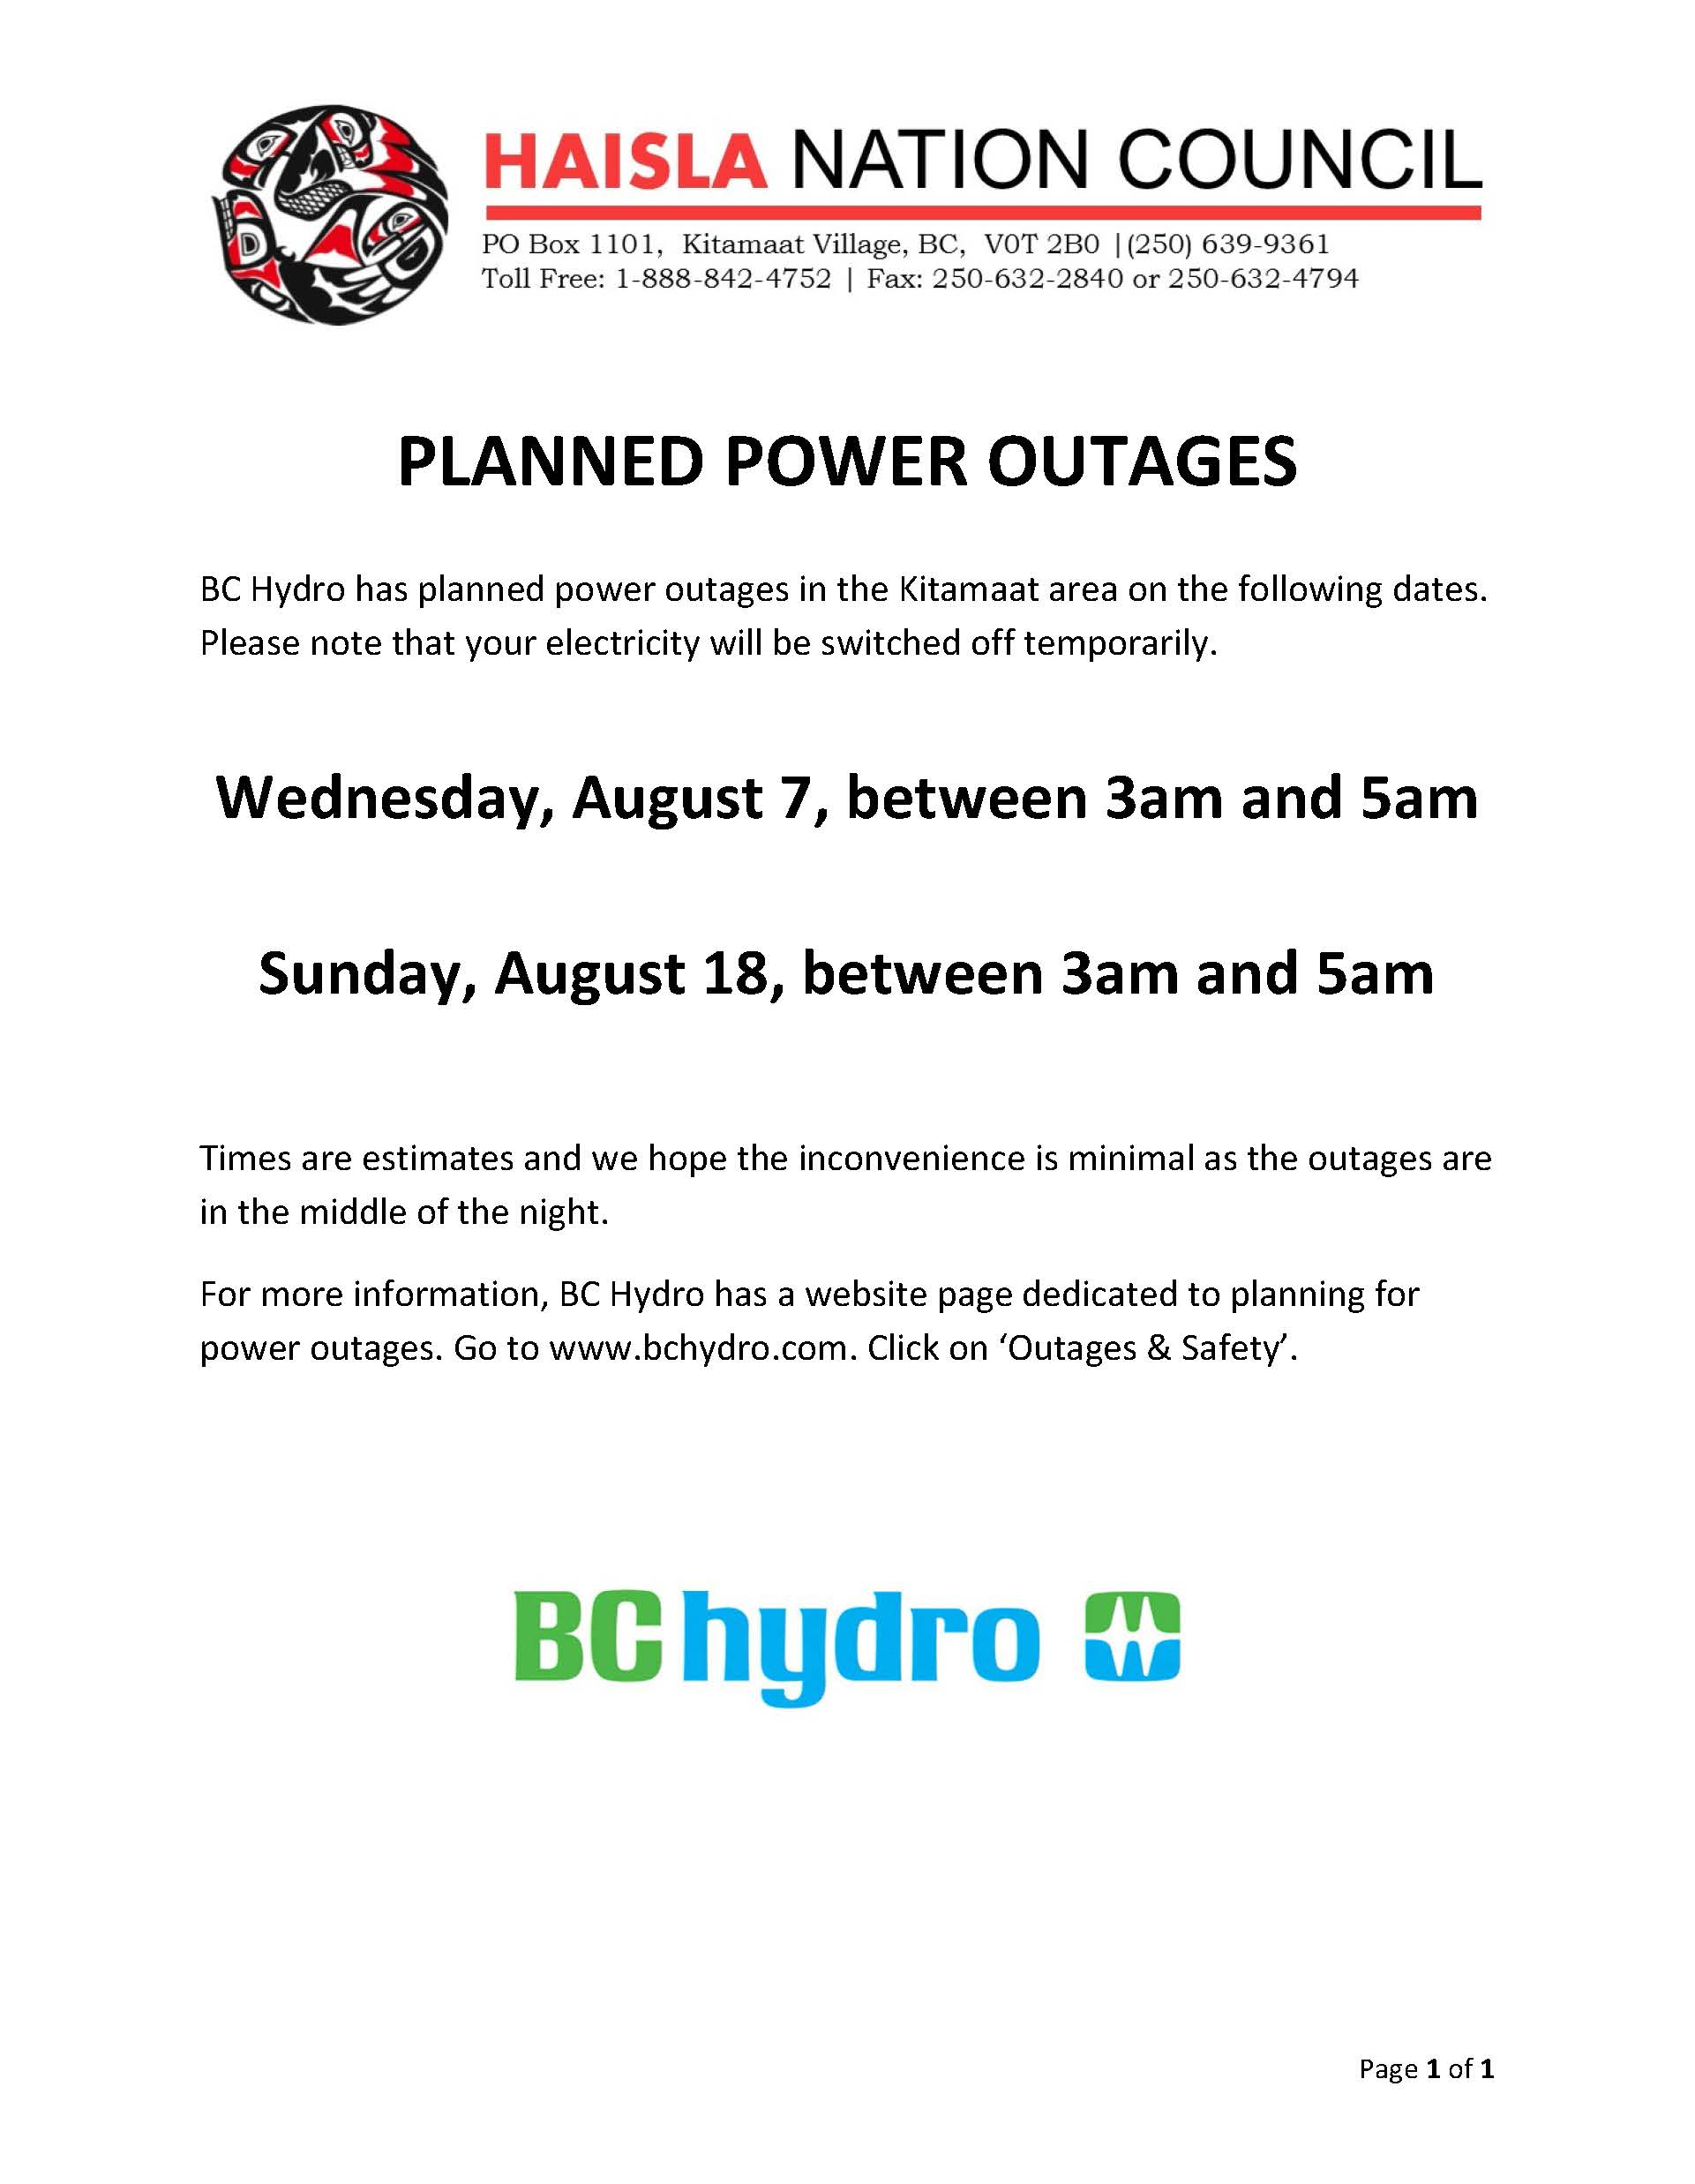 Kitamaat Power Outages - August 7 & 18, 3am to 5am - Haisla Nation